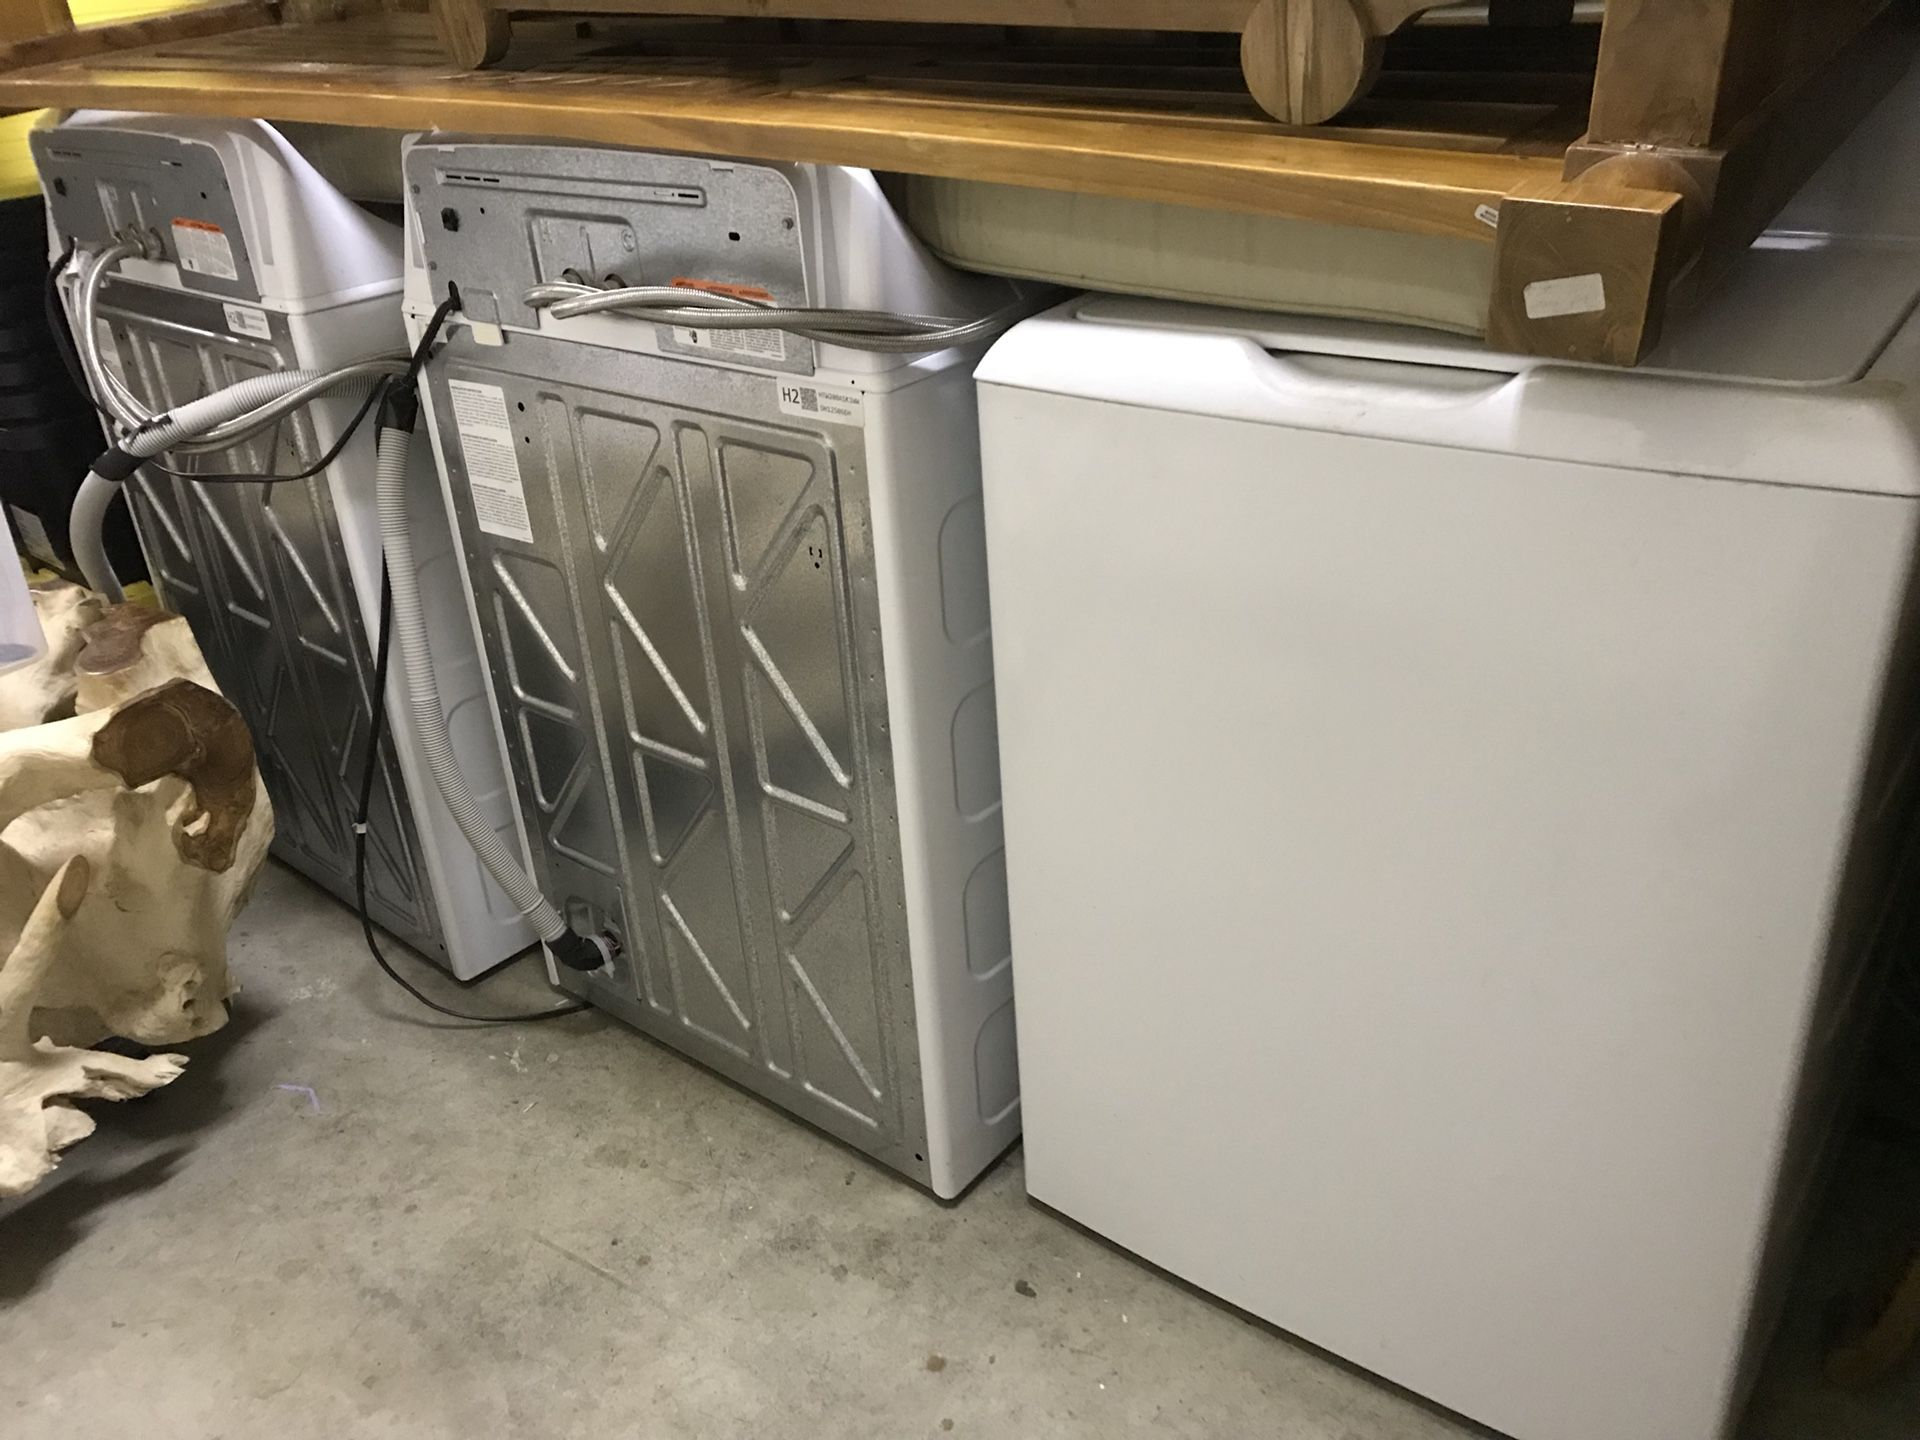 3 washer in good condition. Used about 15 times each one